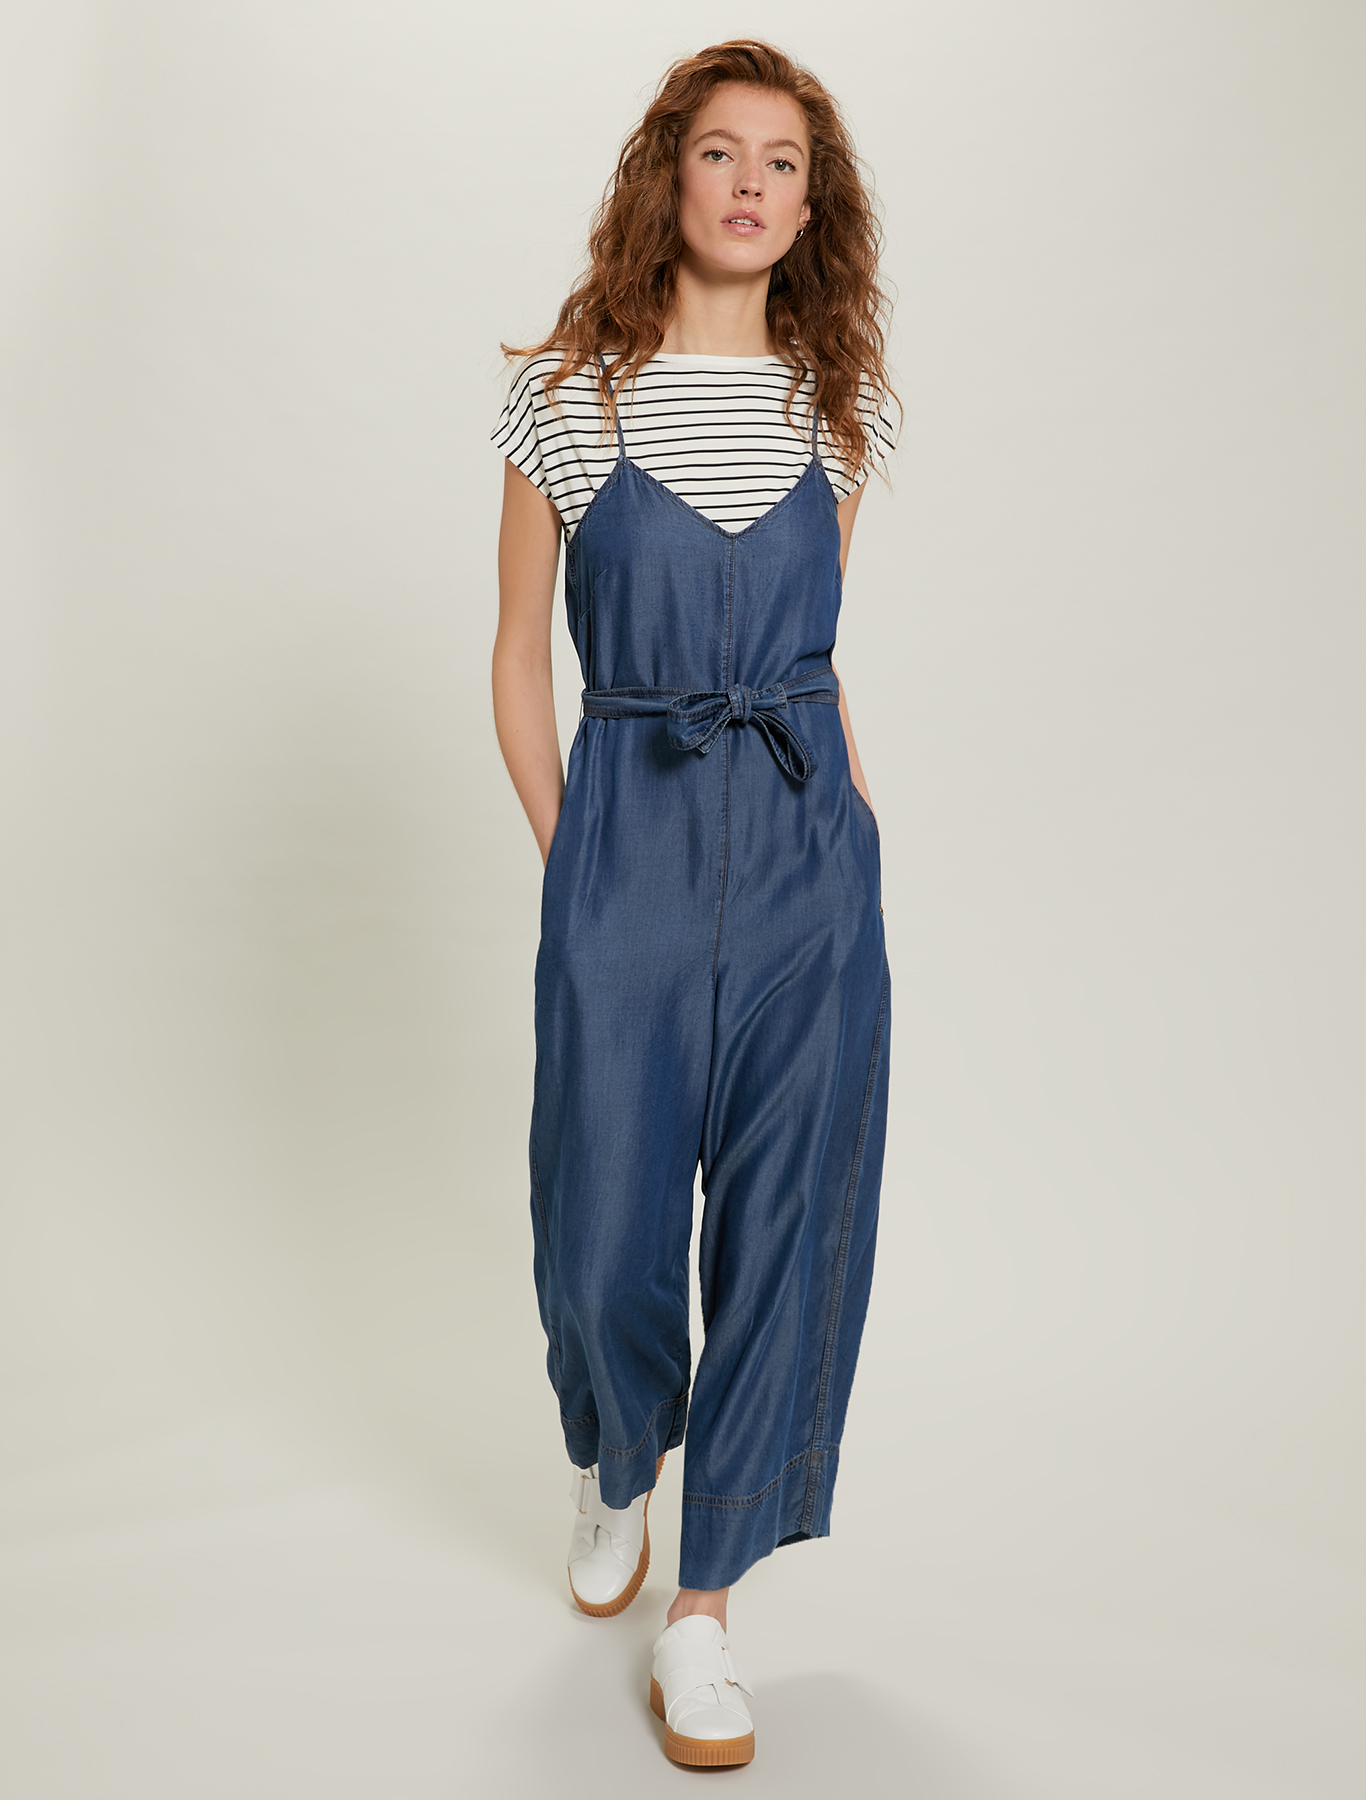 Jumpsuit in flowing denim - navy blue - pennyblack